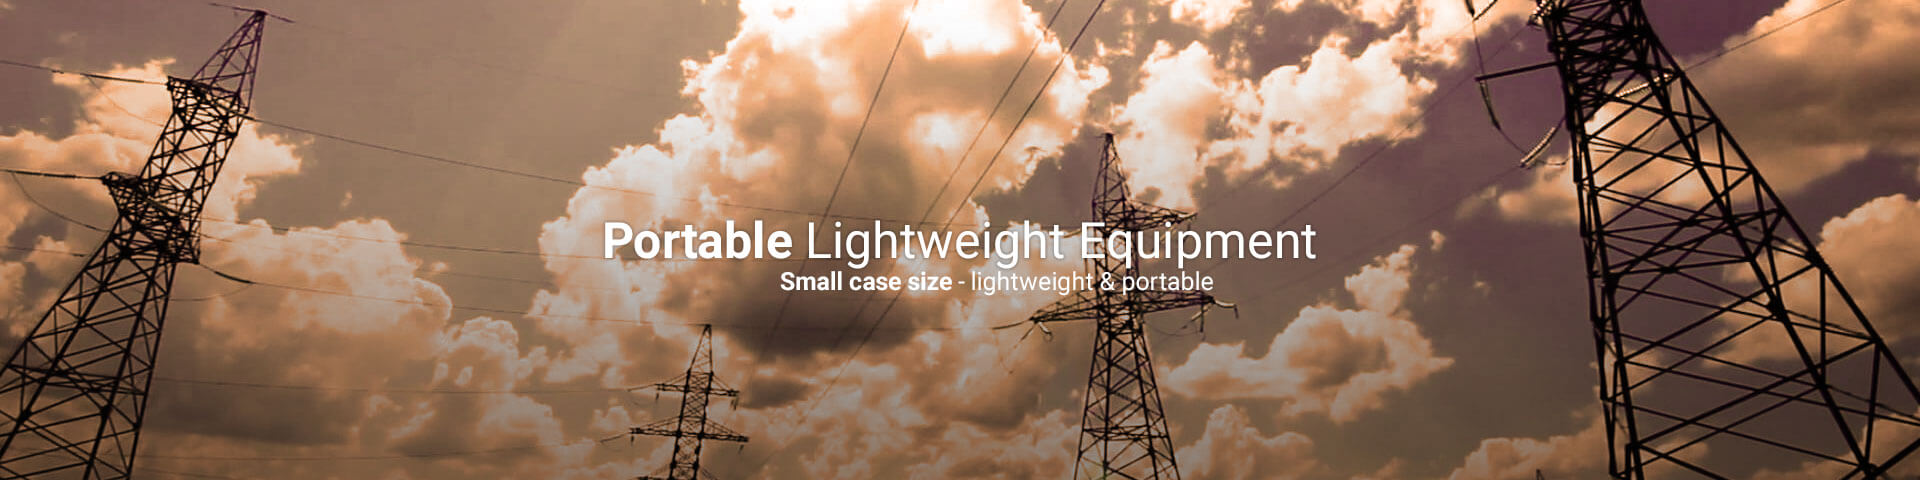 portable-lightweight-equipment